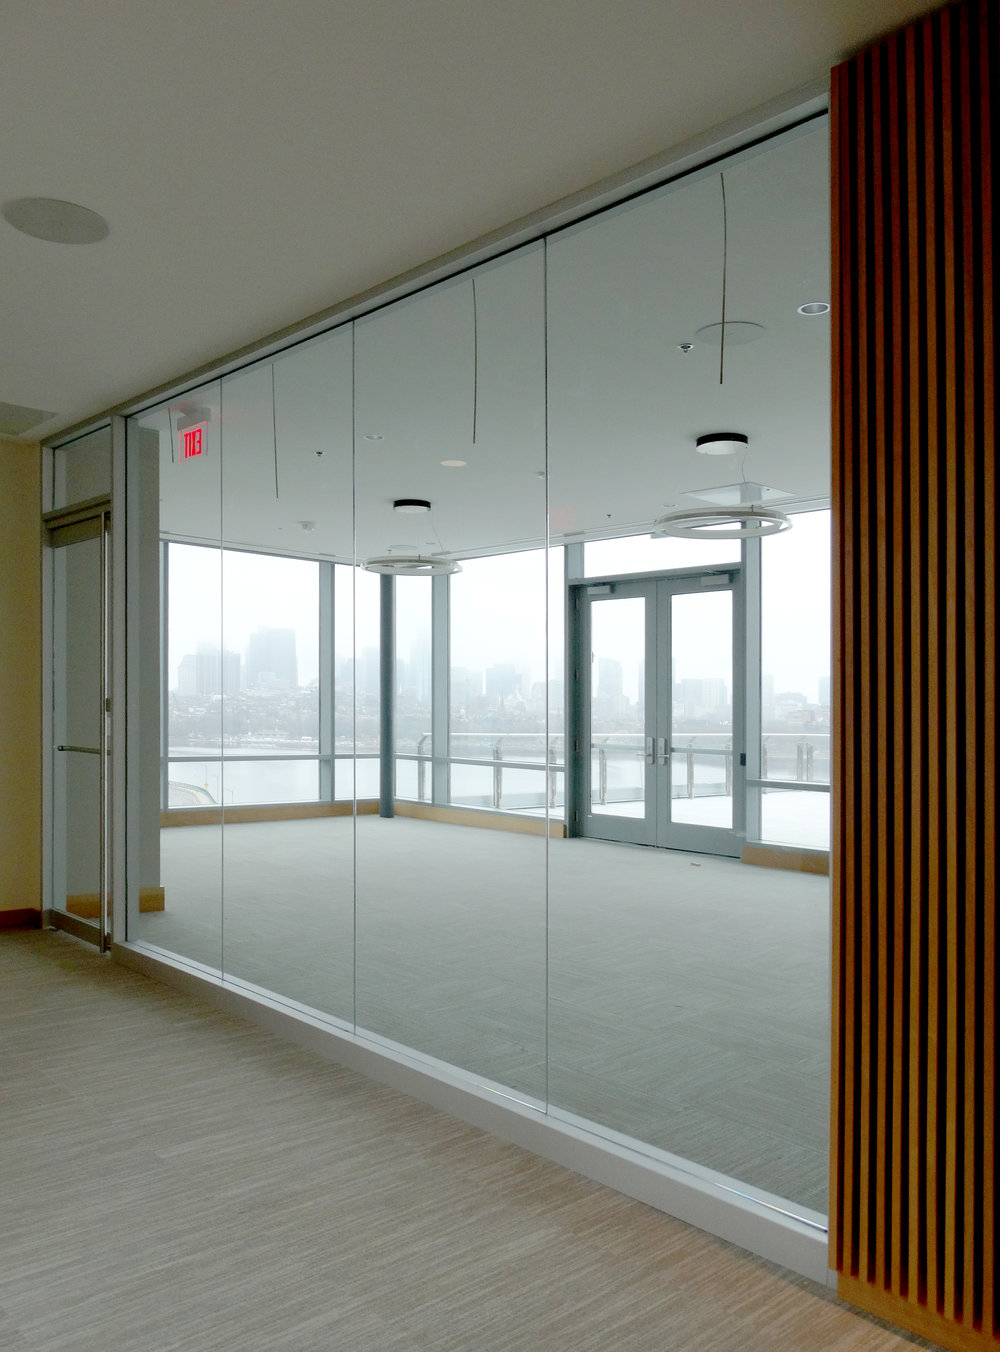 Encase Aluminum Framed Conference Wall Rail Glass Door - Spaceworks AI.jpg